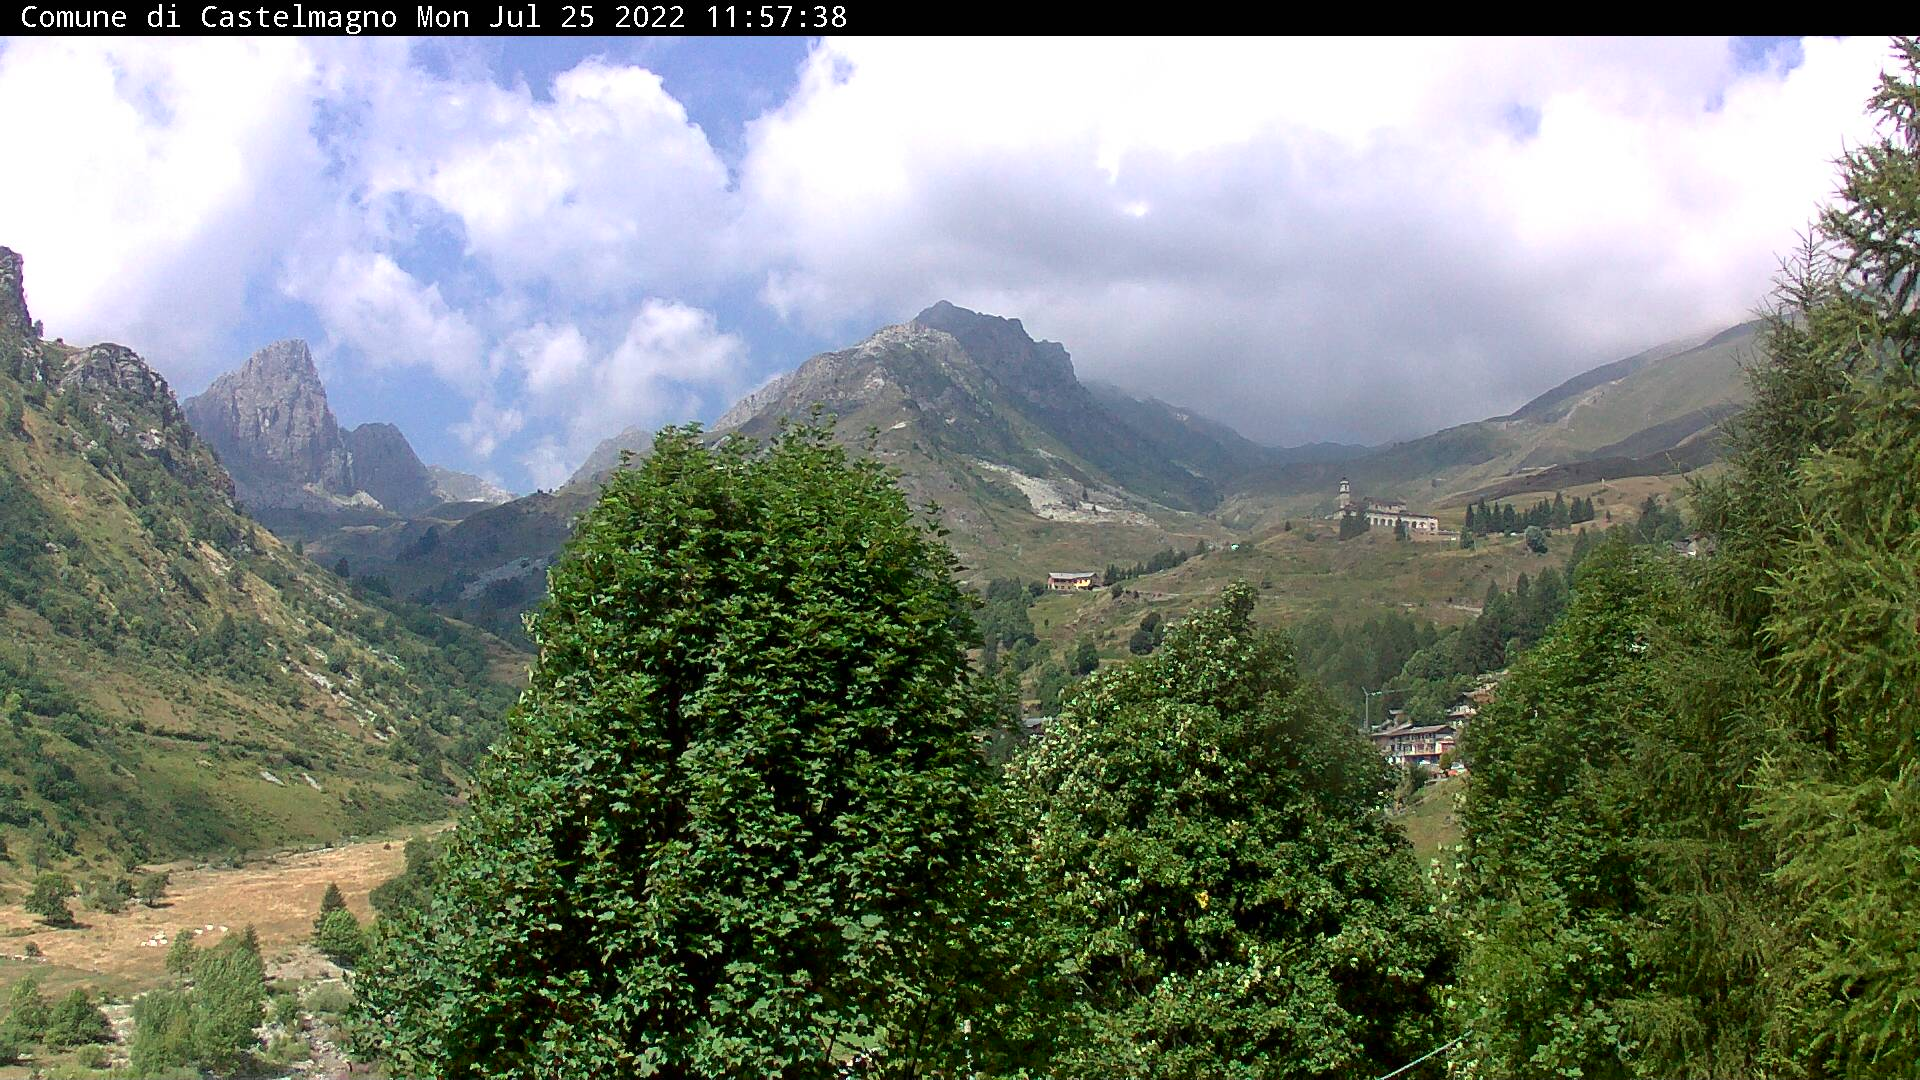 Webcam su Castelmagno